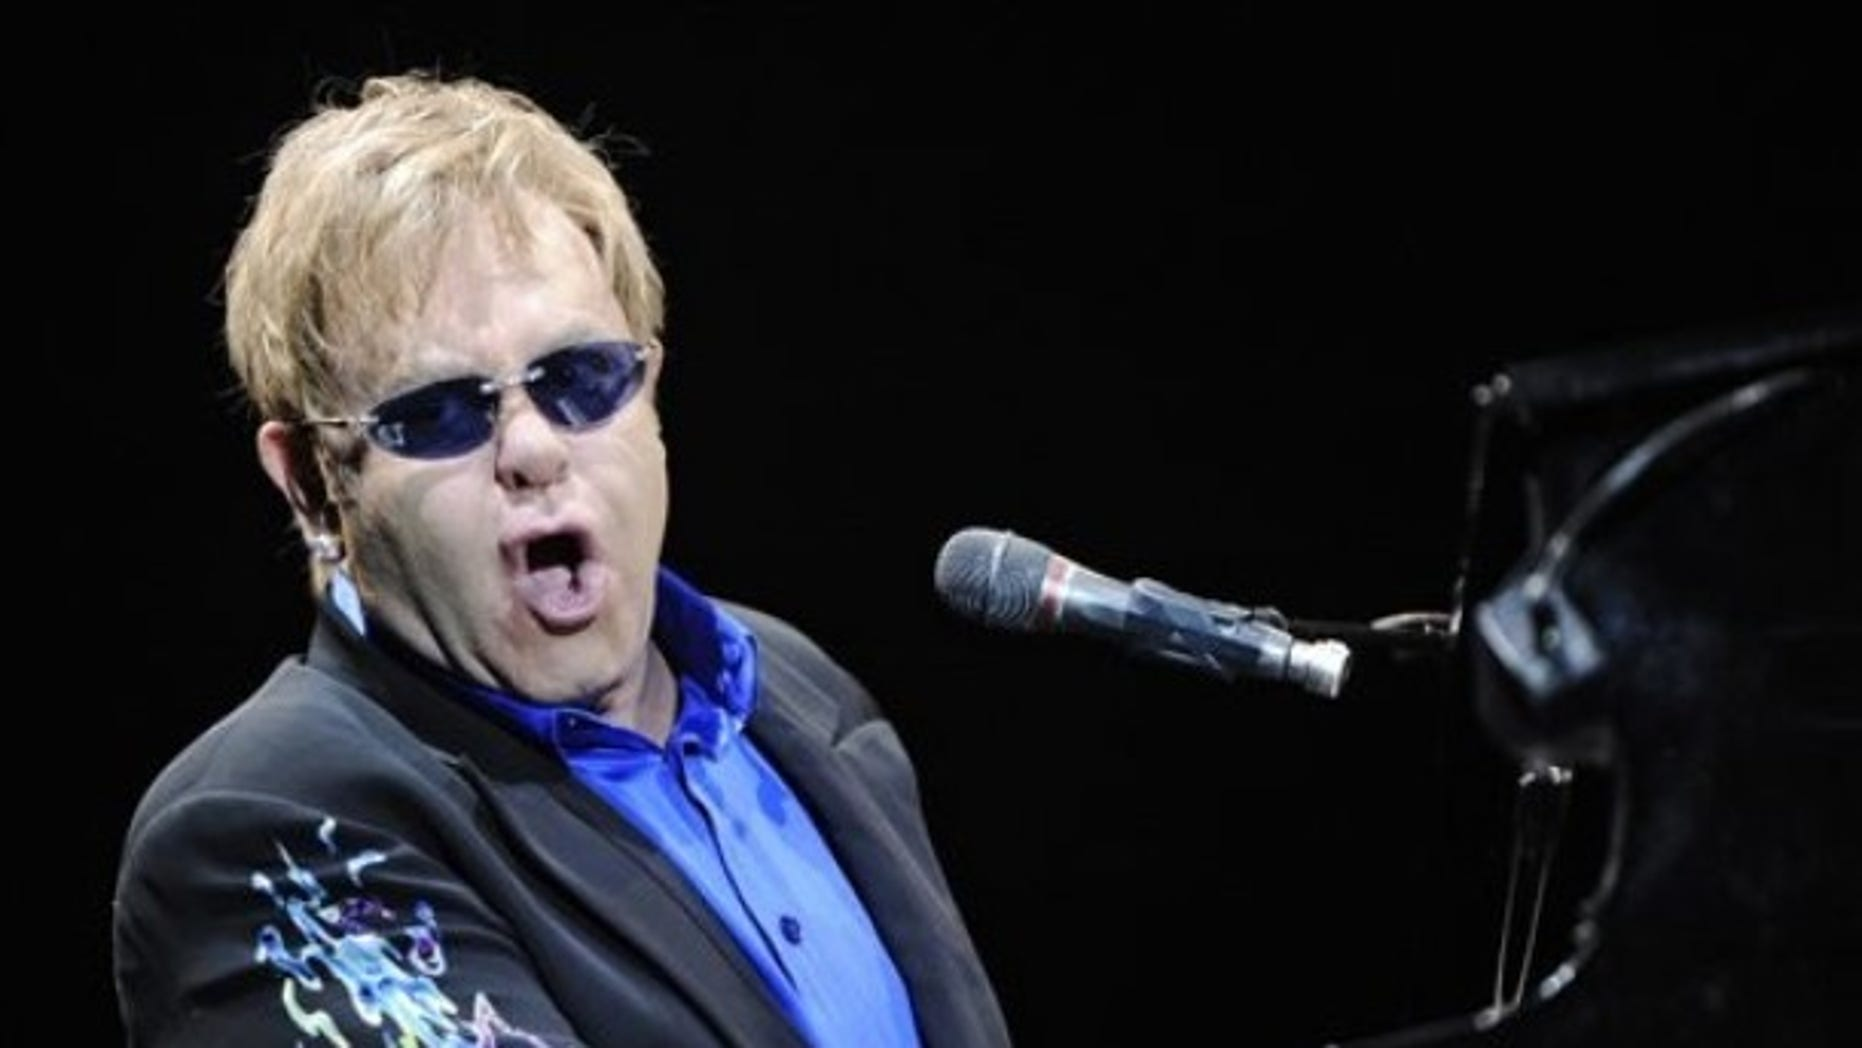 British pop singer and composer Elton John performs in Kosice, Slovakia, Tuesday, June 22, 2010. (AP Photo/CTK, Peter Lazar) **SLOVAKIA OUT**